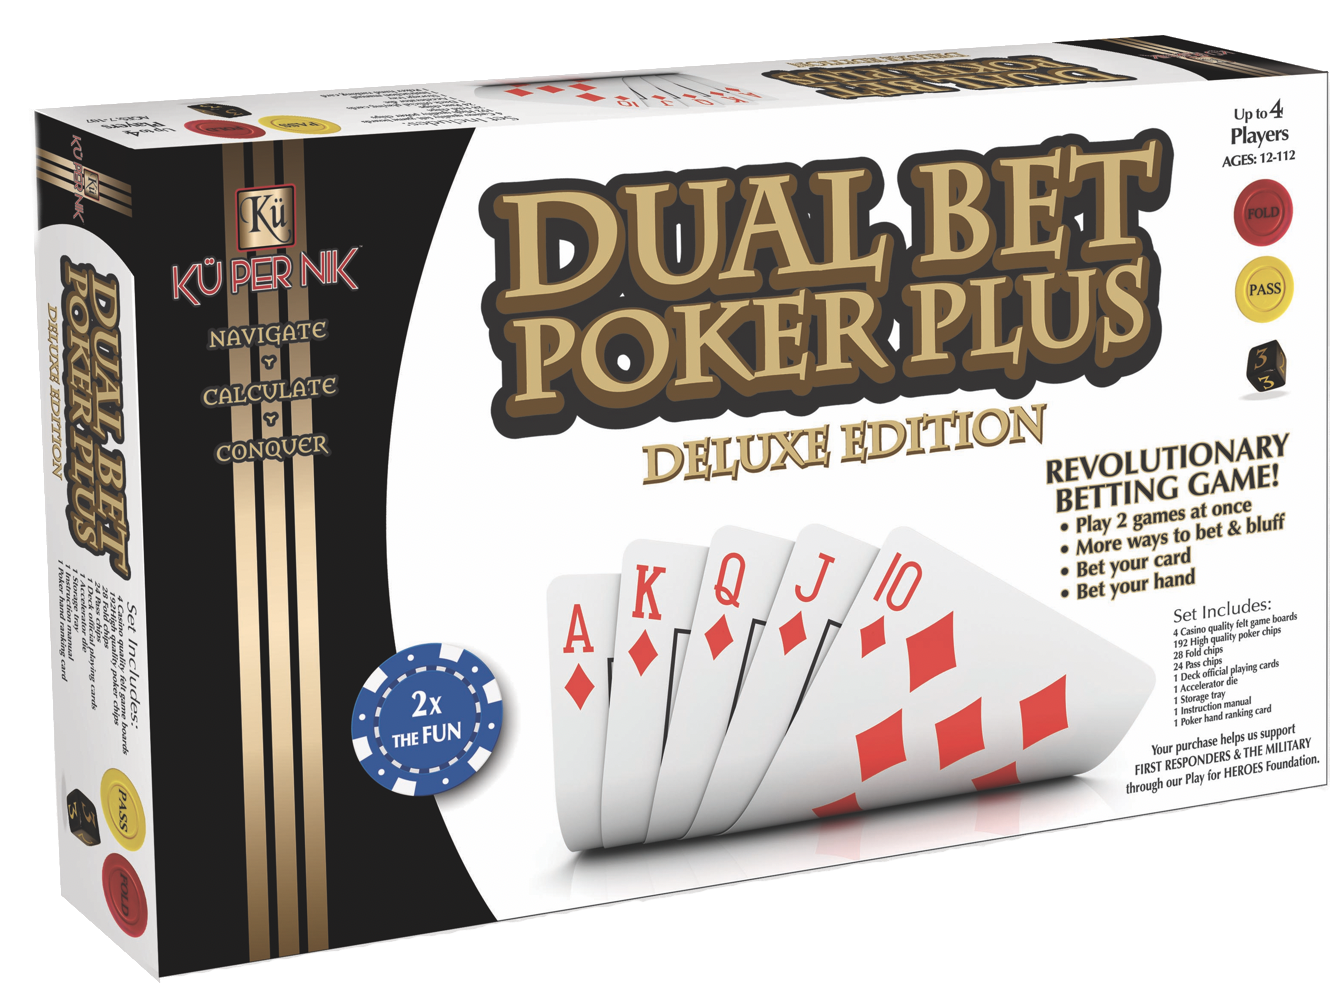 dualbetpokerplus ub rendering -02-23 at